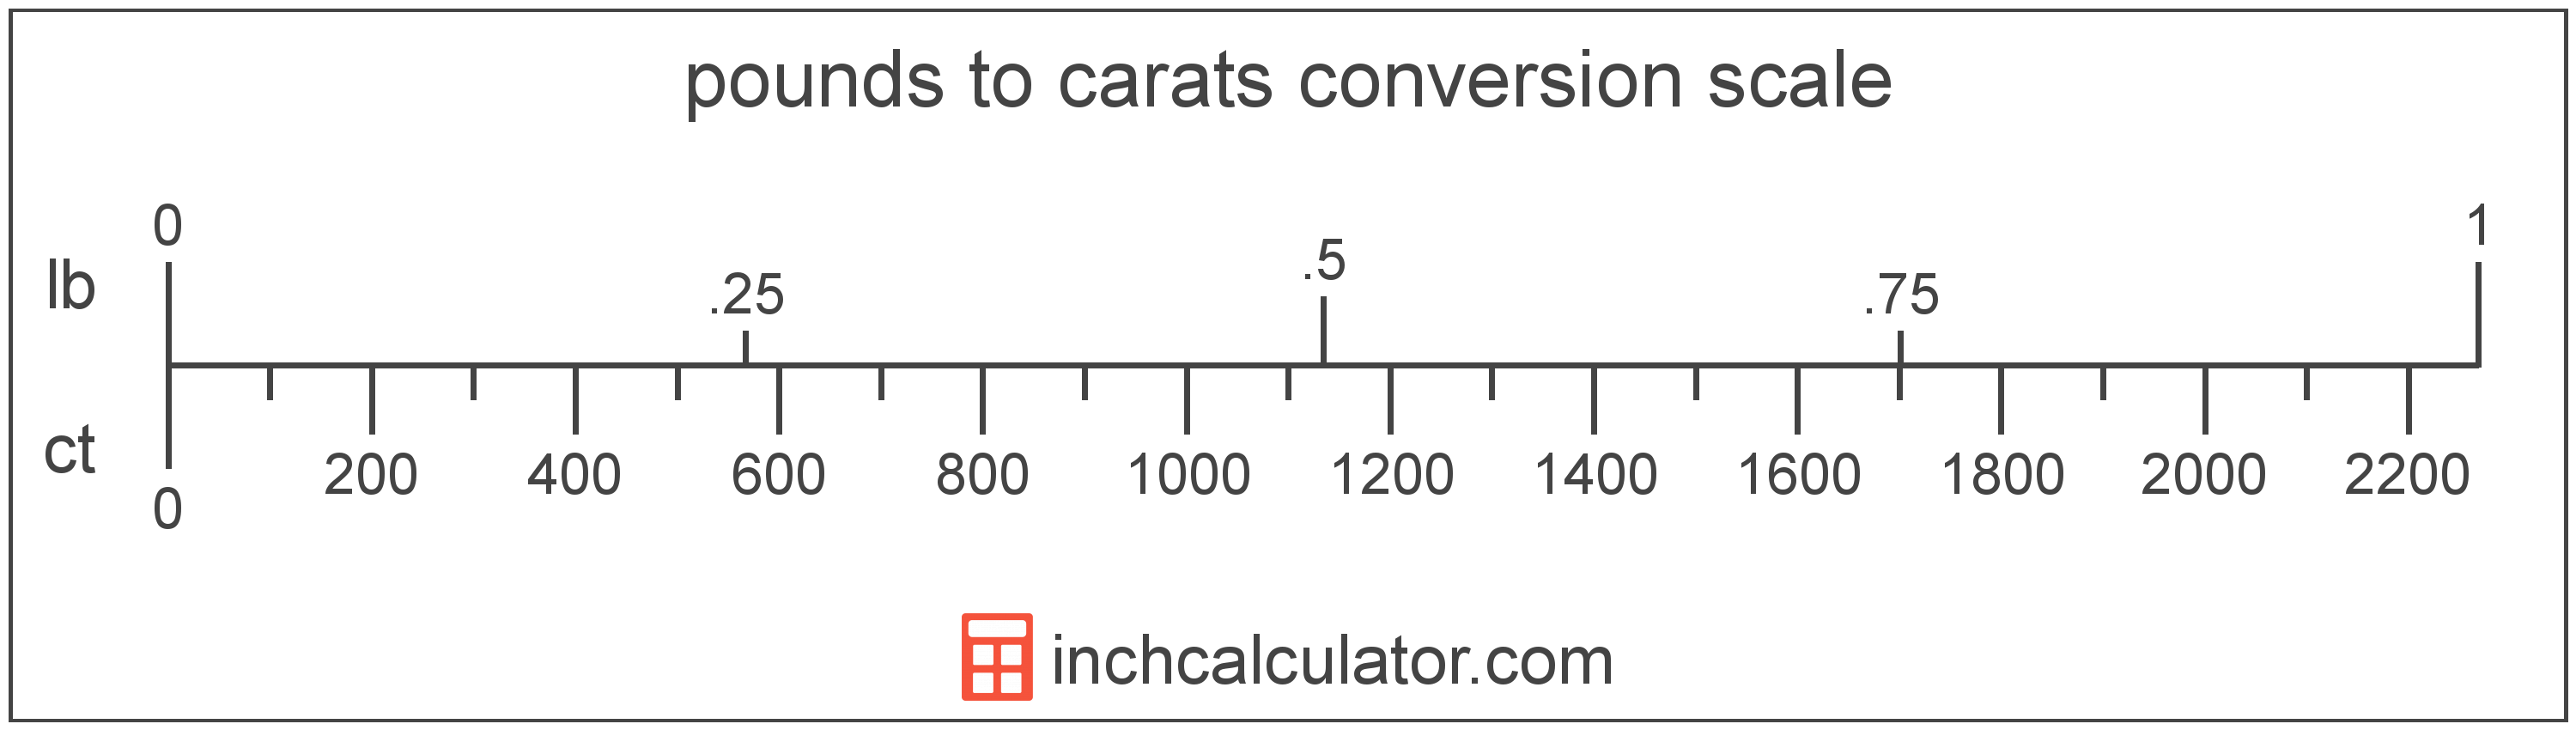 conversion scale showing carats and equivalent pounds weight values